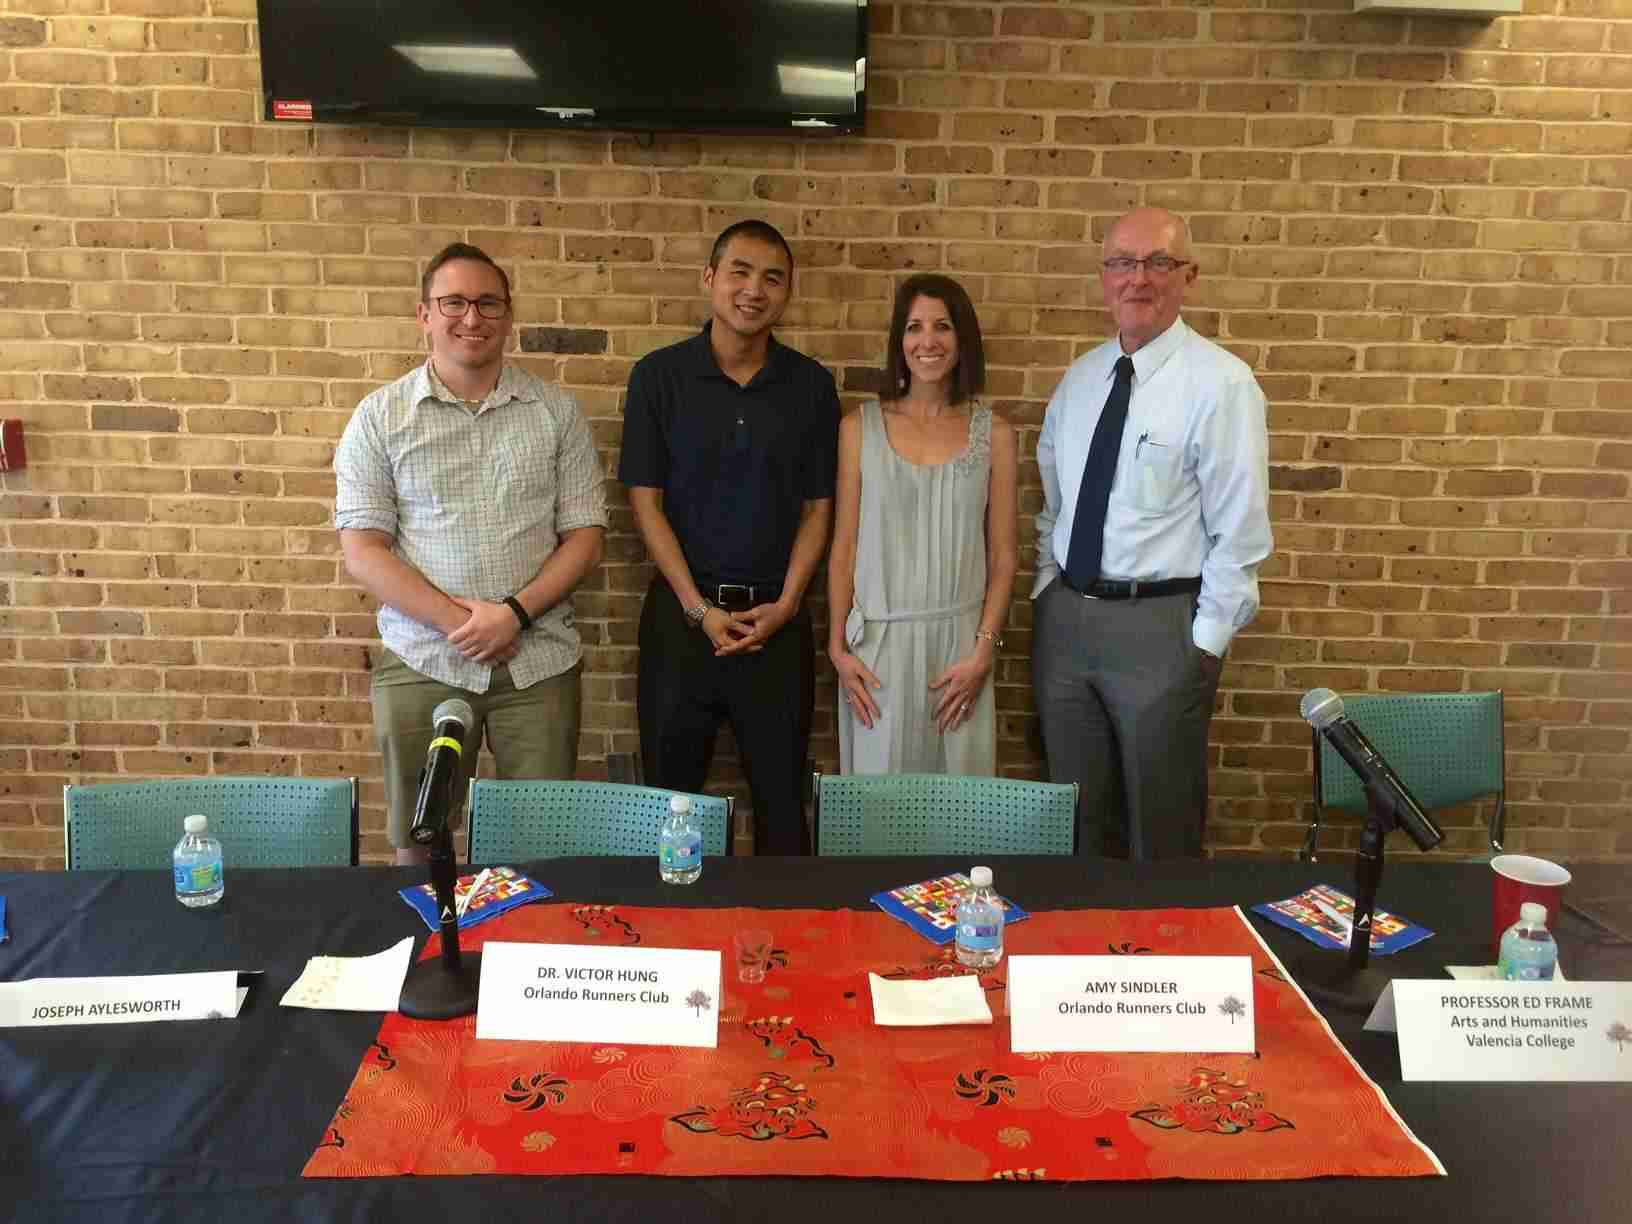 From L-to-R: Joseph Aylesworth, Dr. Victor Hung, Amy Sindler and professor Ed Frame.